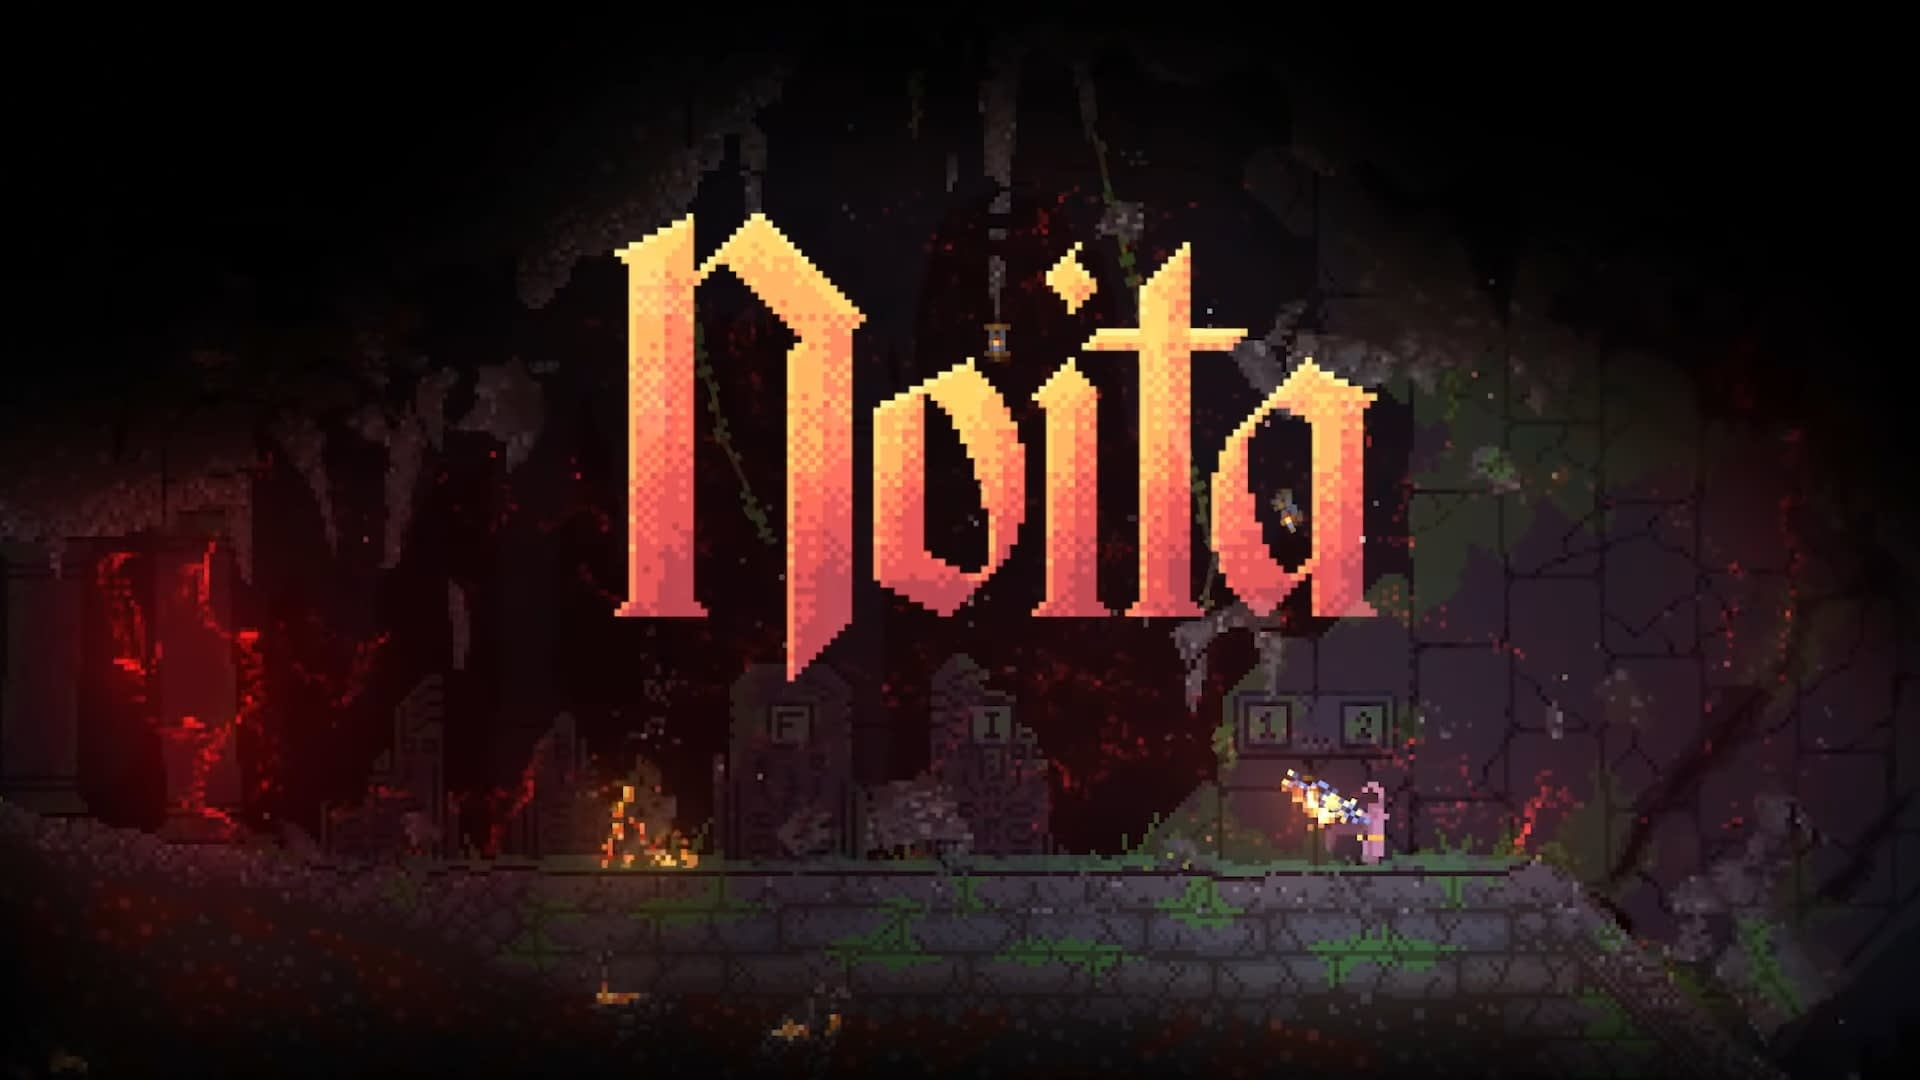 Action-Roguelike Noita takes its physics sandbox out of Early Access